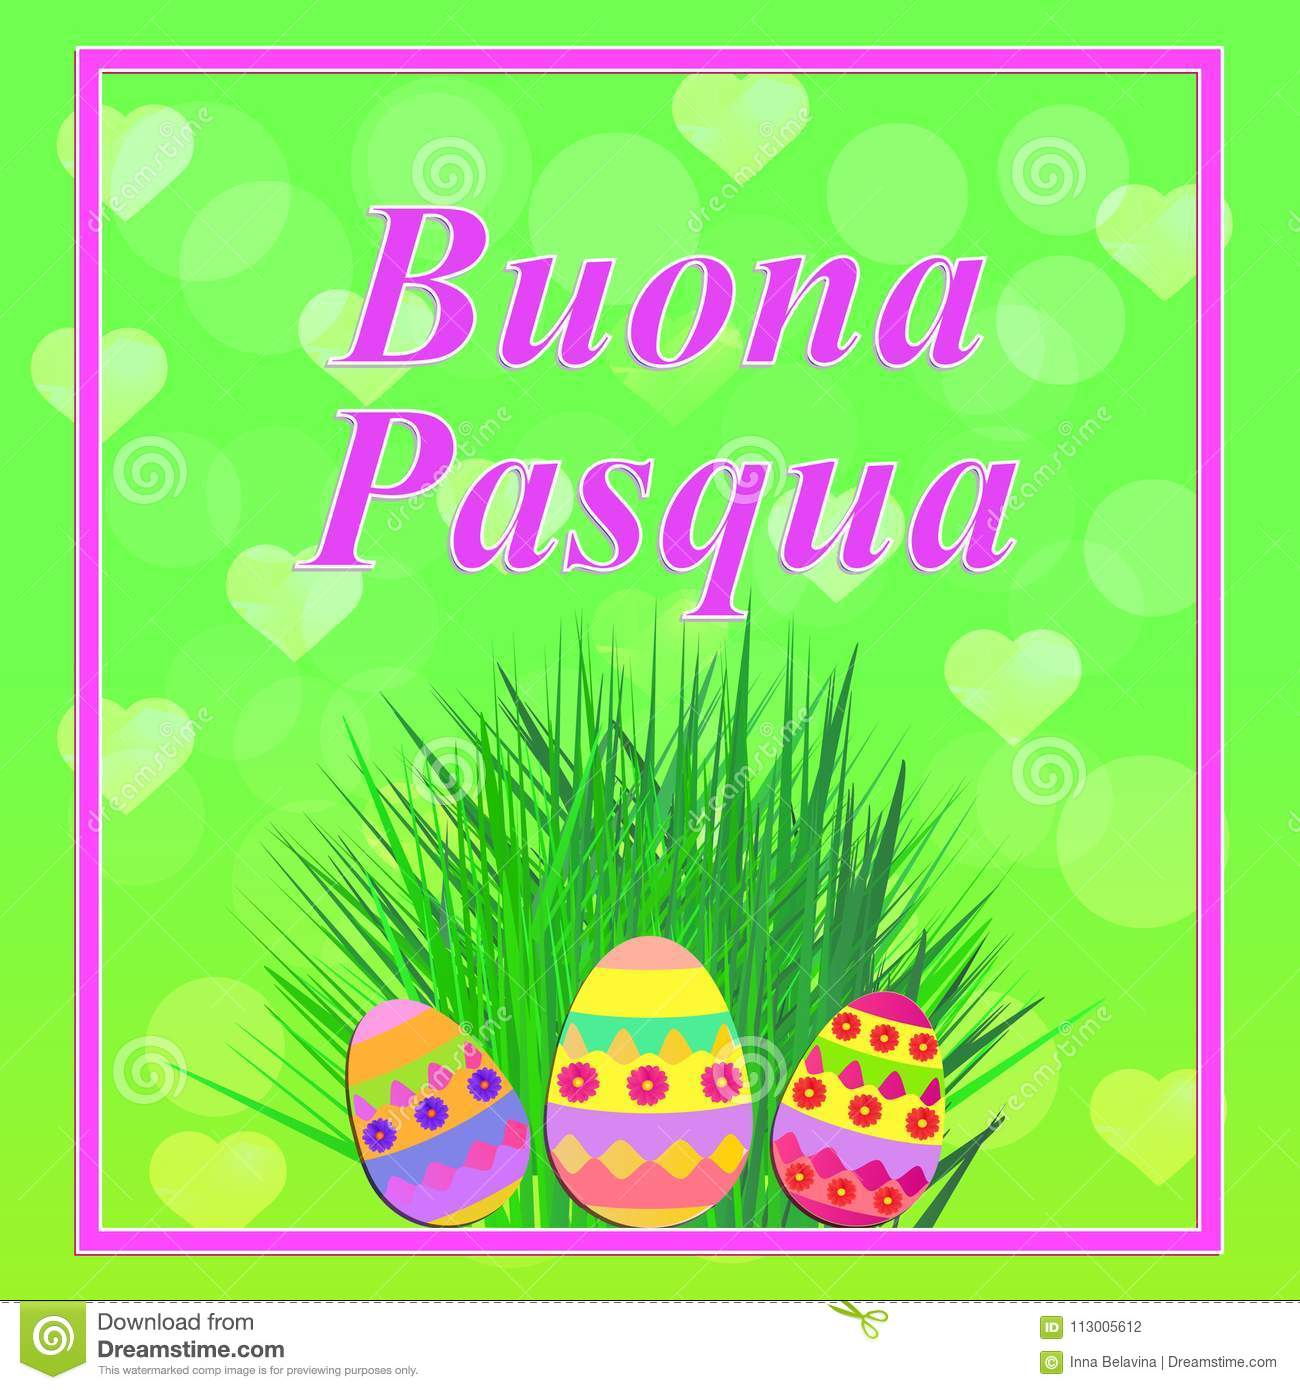 Buona Pasqua Illustration Stock Illustration Illustration Of Gift